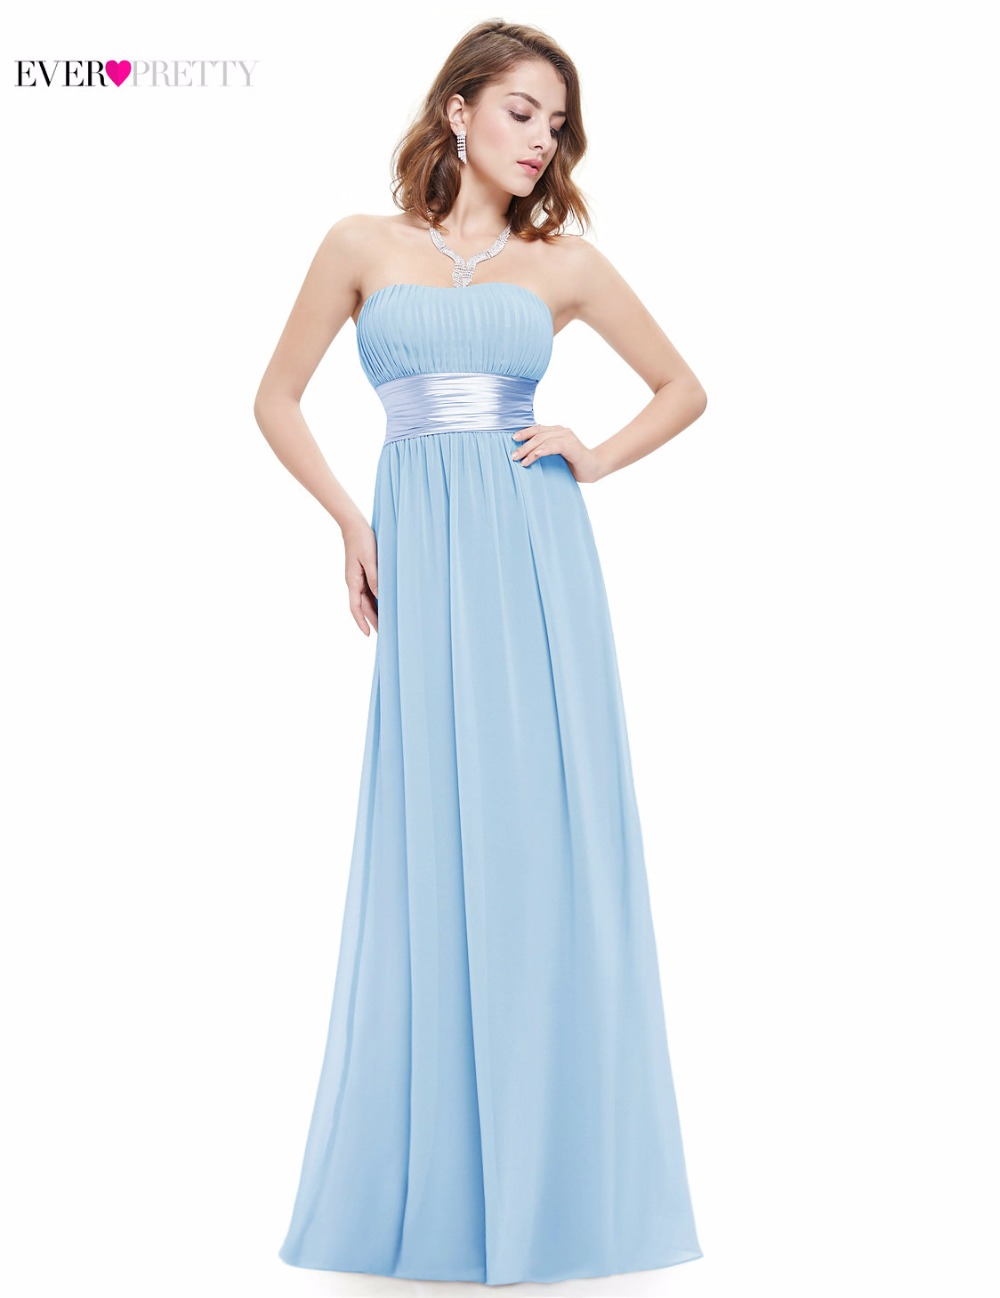 Ever-Pretty New Women Sexy long Bridesmaid Dresses Sleeveless Sweetheart  A-Line Chiffon Backless 447359d653f1